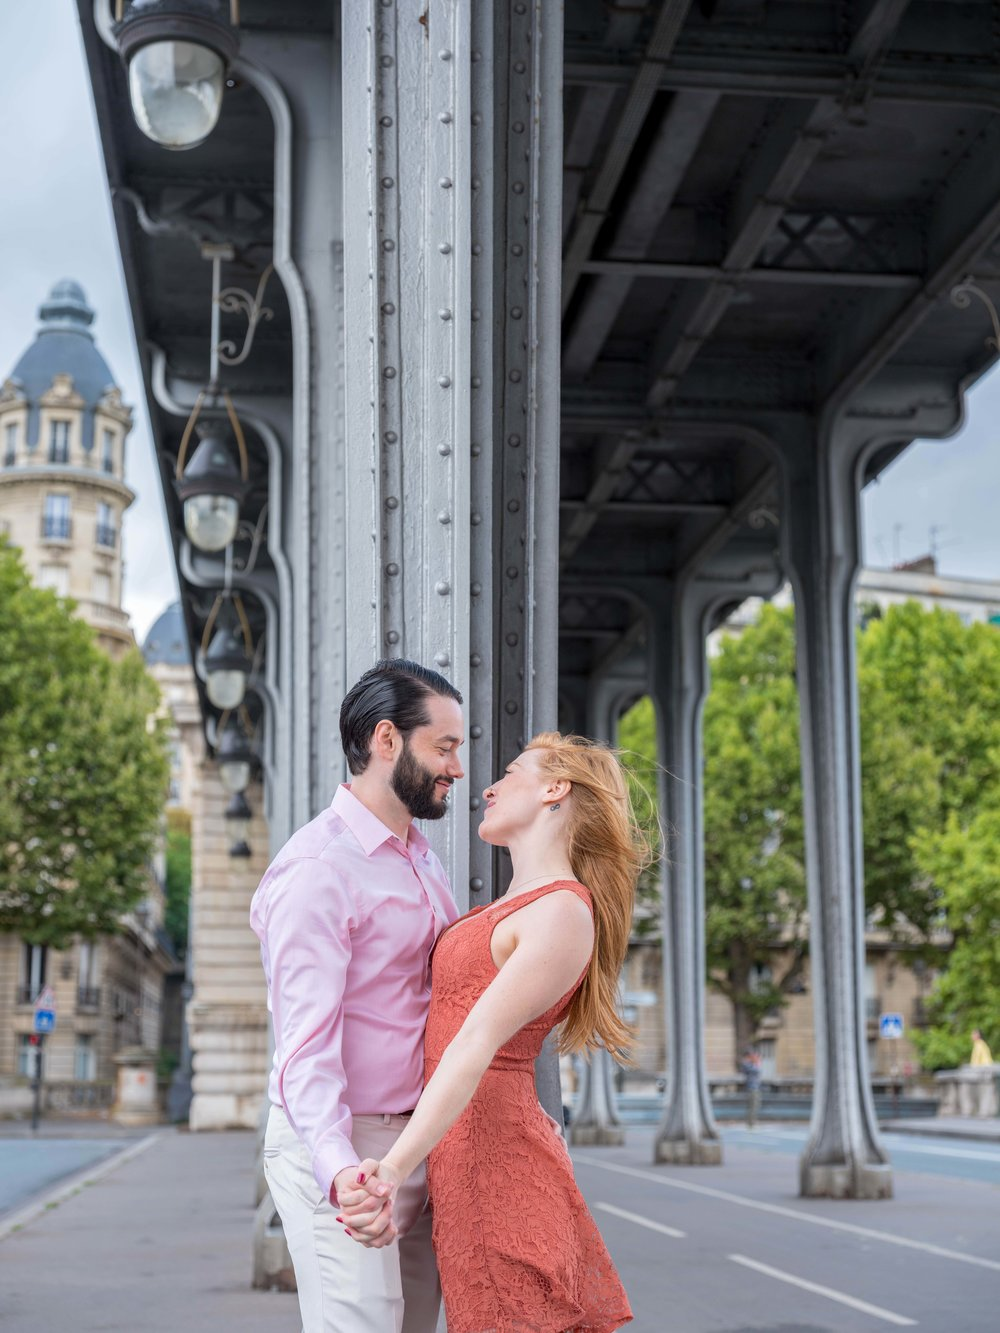 alicia & cory - This couple was a ton of fun to work with! Energetic and up for anything, we spent an amazing Paris morning, beginning at the Eiffel Tower and then making our way to the Louvre and Tuileries Gardens.See more images here